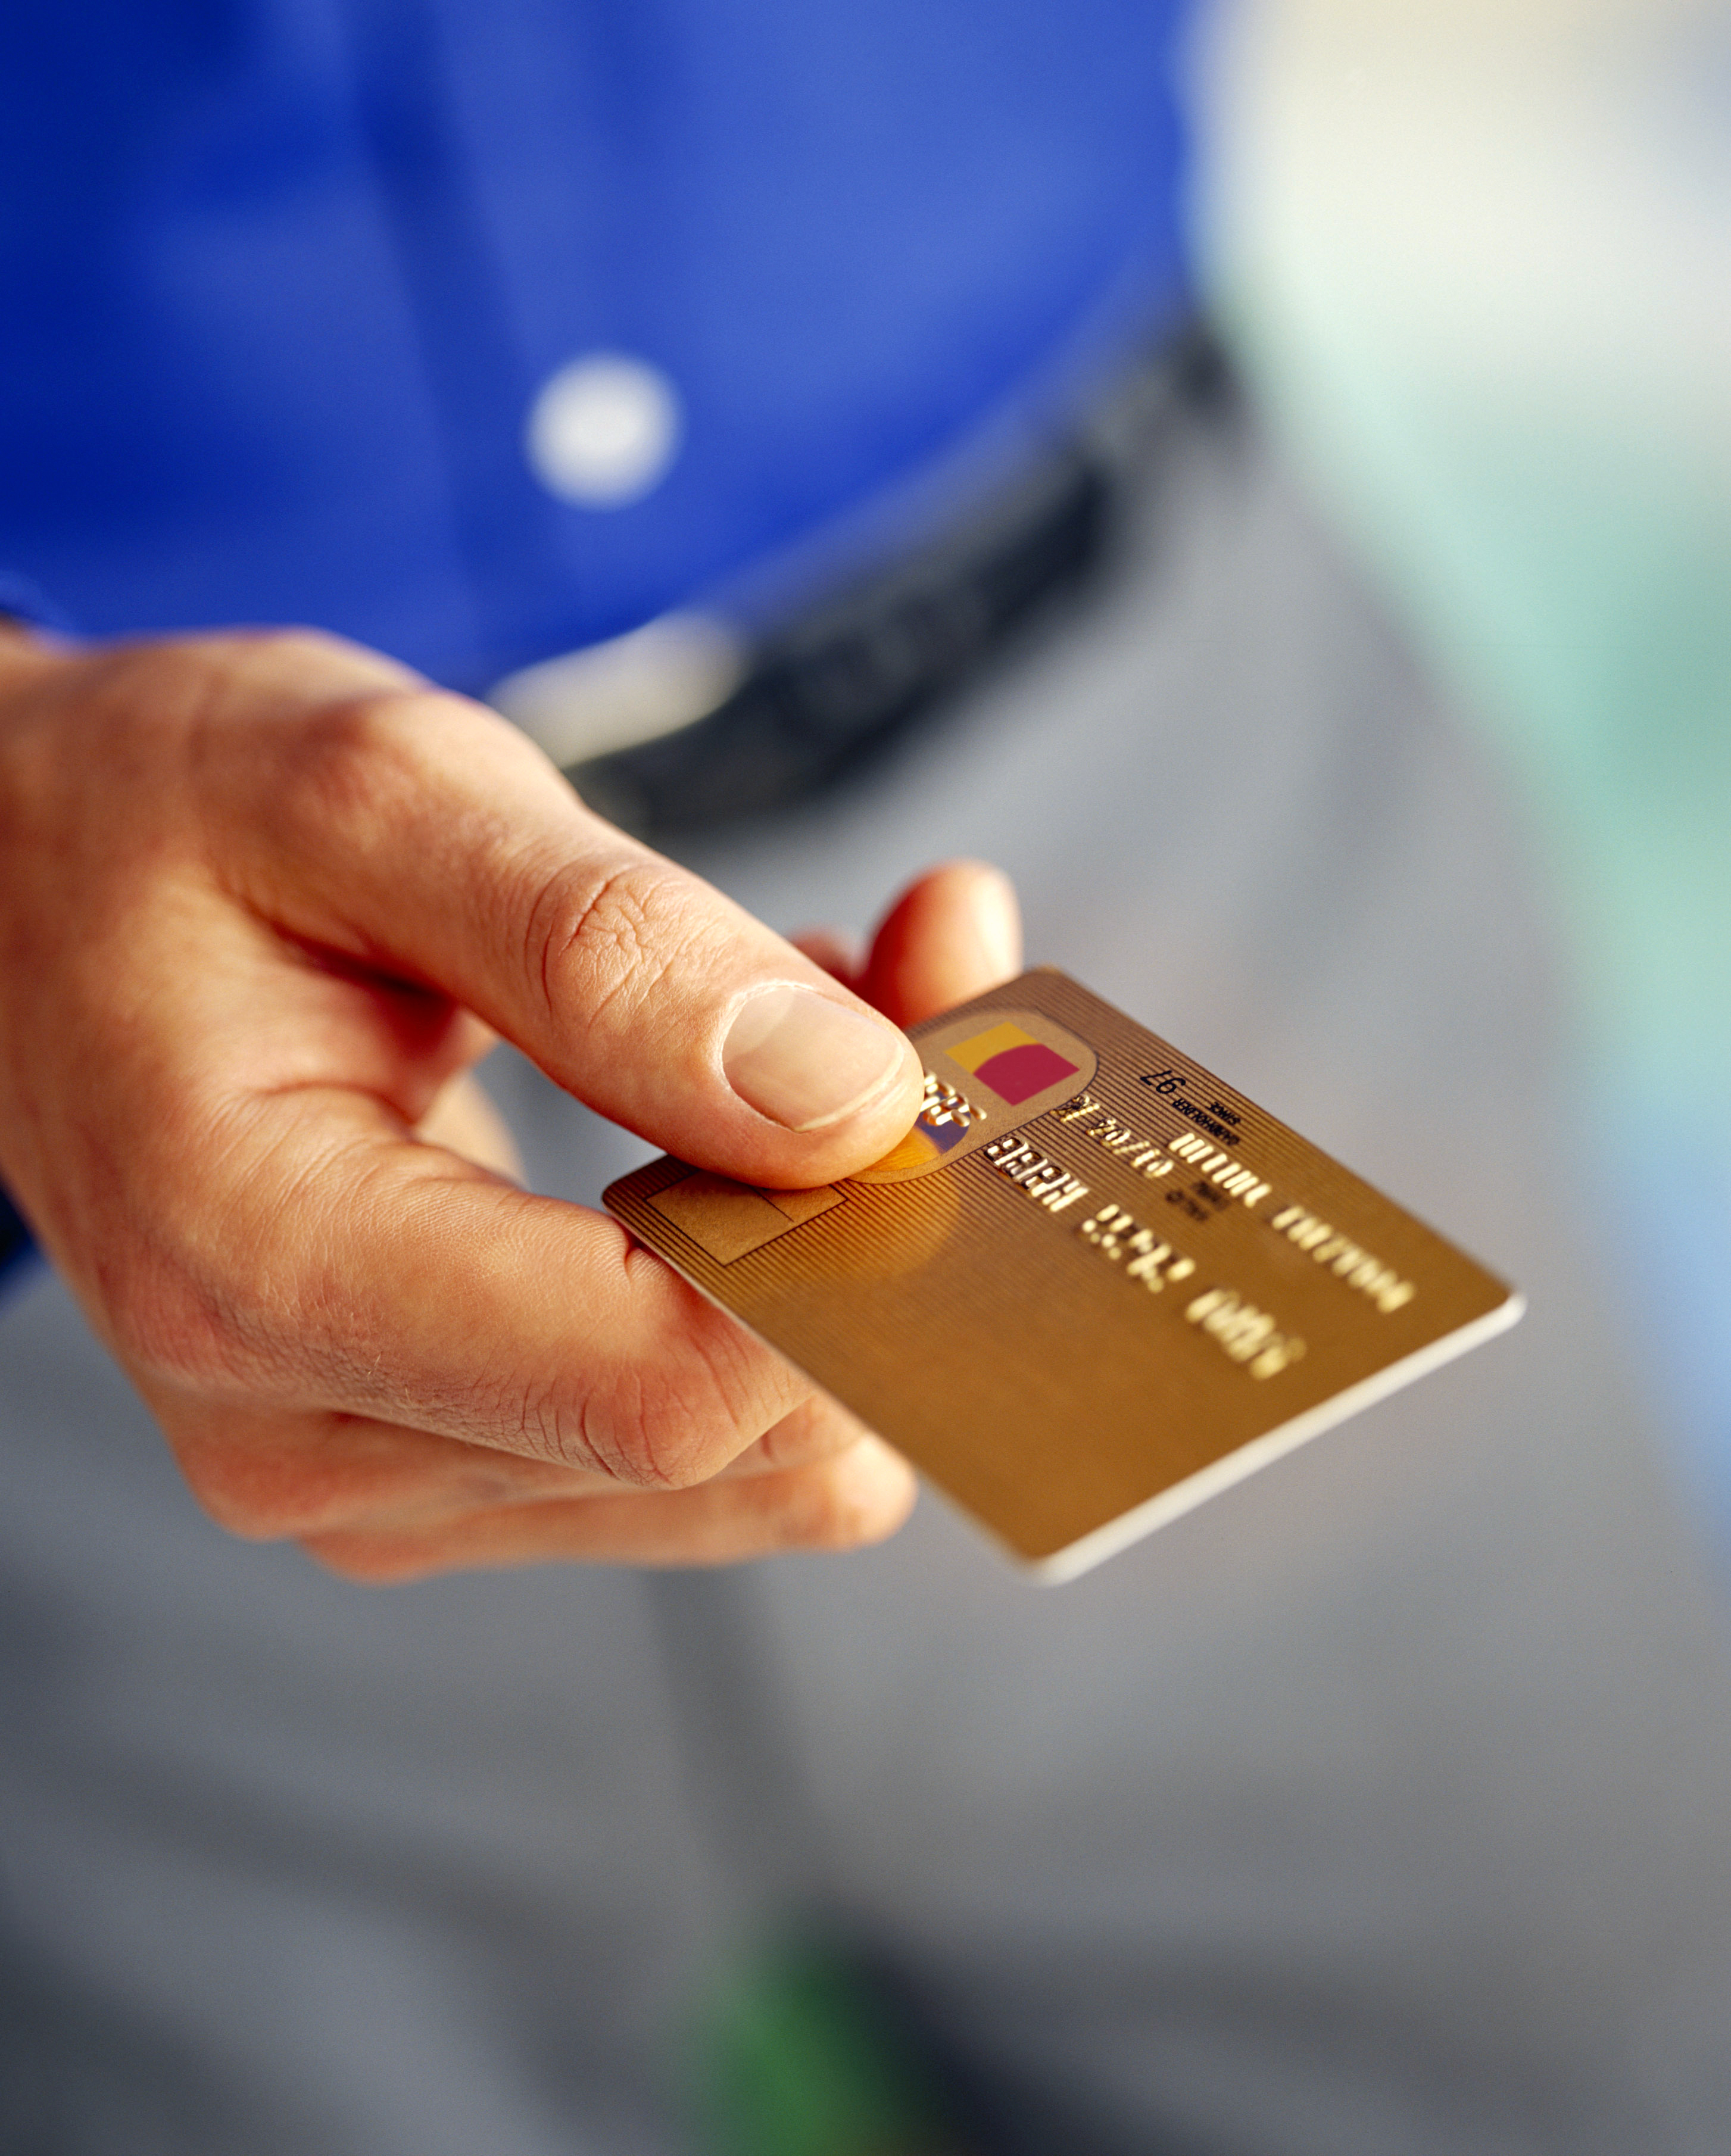 dangers of using credit cards